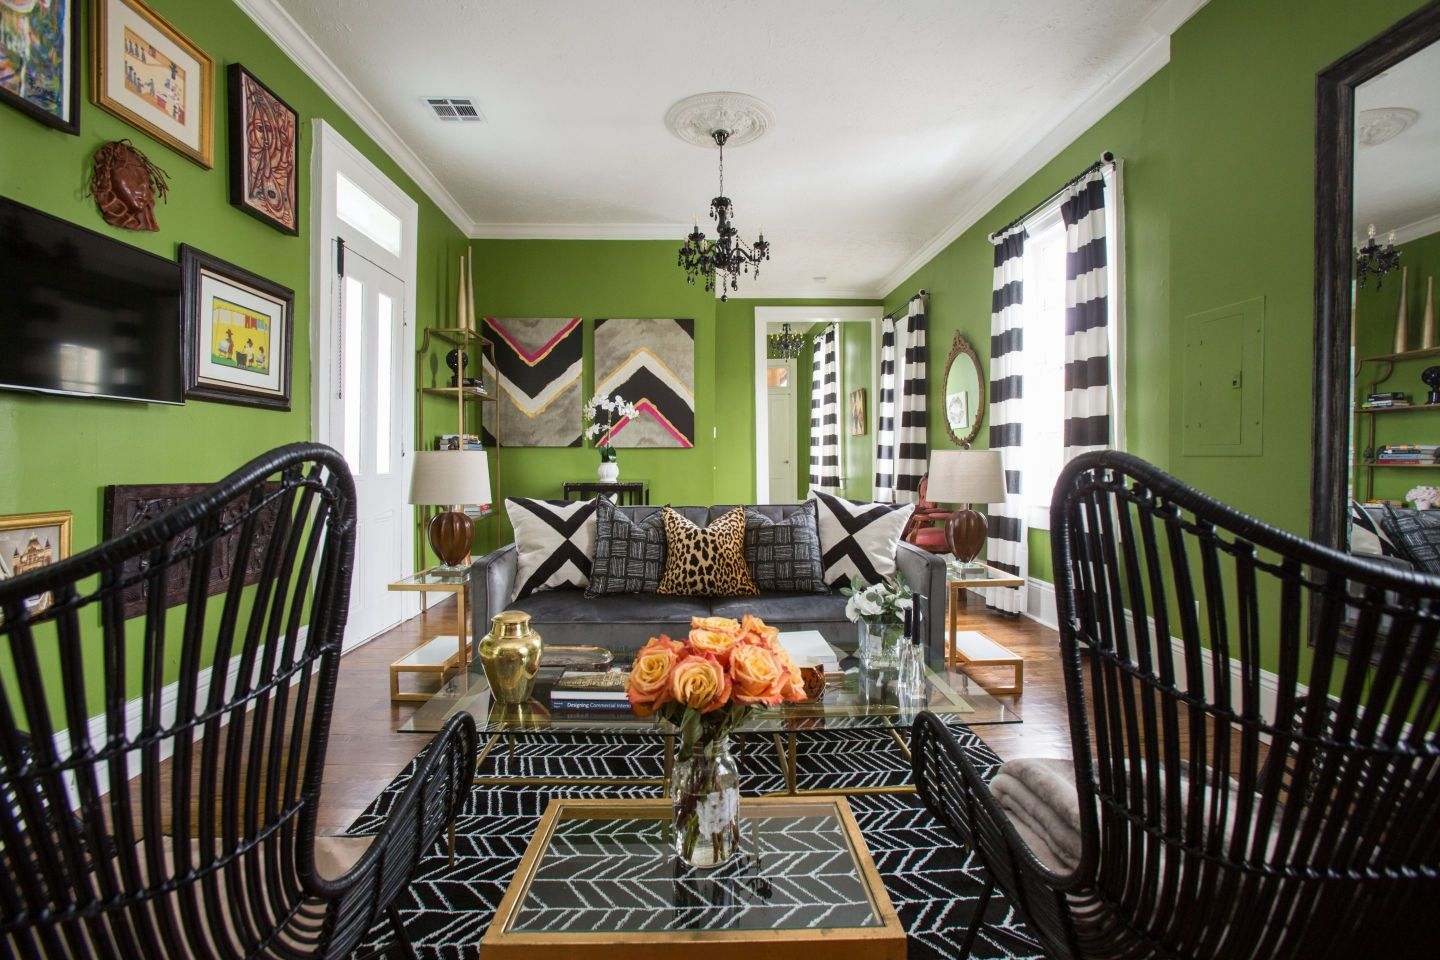 airbnb-6-1440x960 From Rocket Science to Interior Design: Baton Rouge Roots and Bold Design from April Vogt